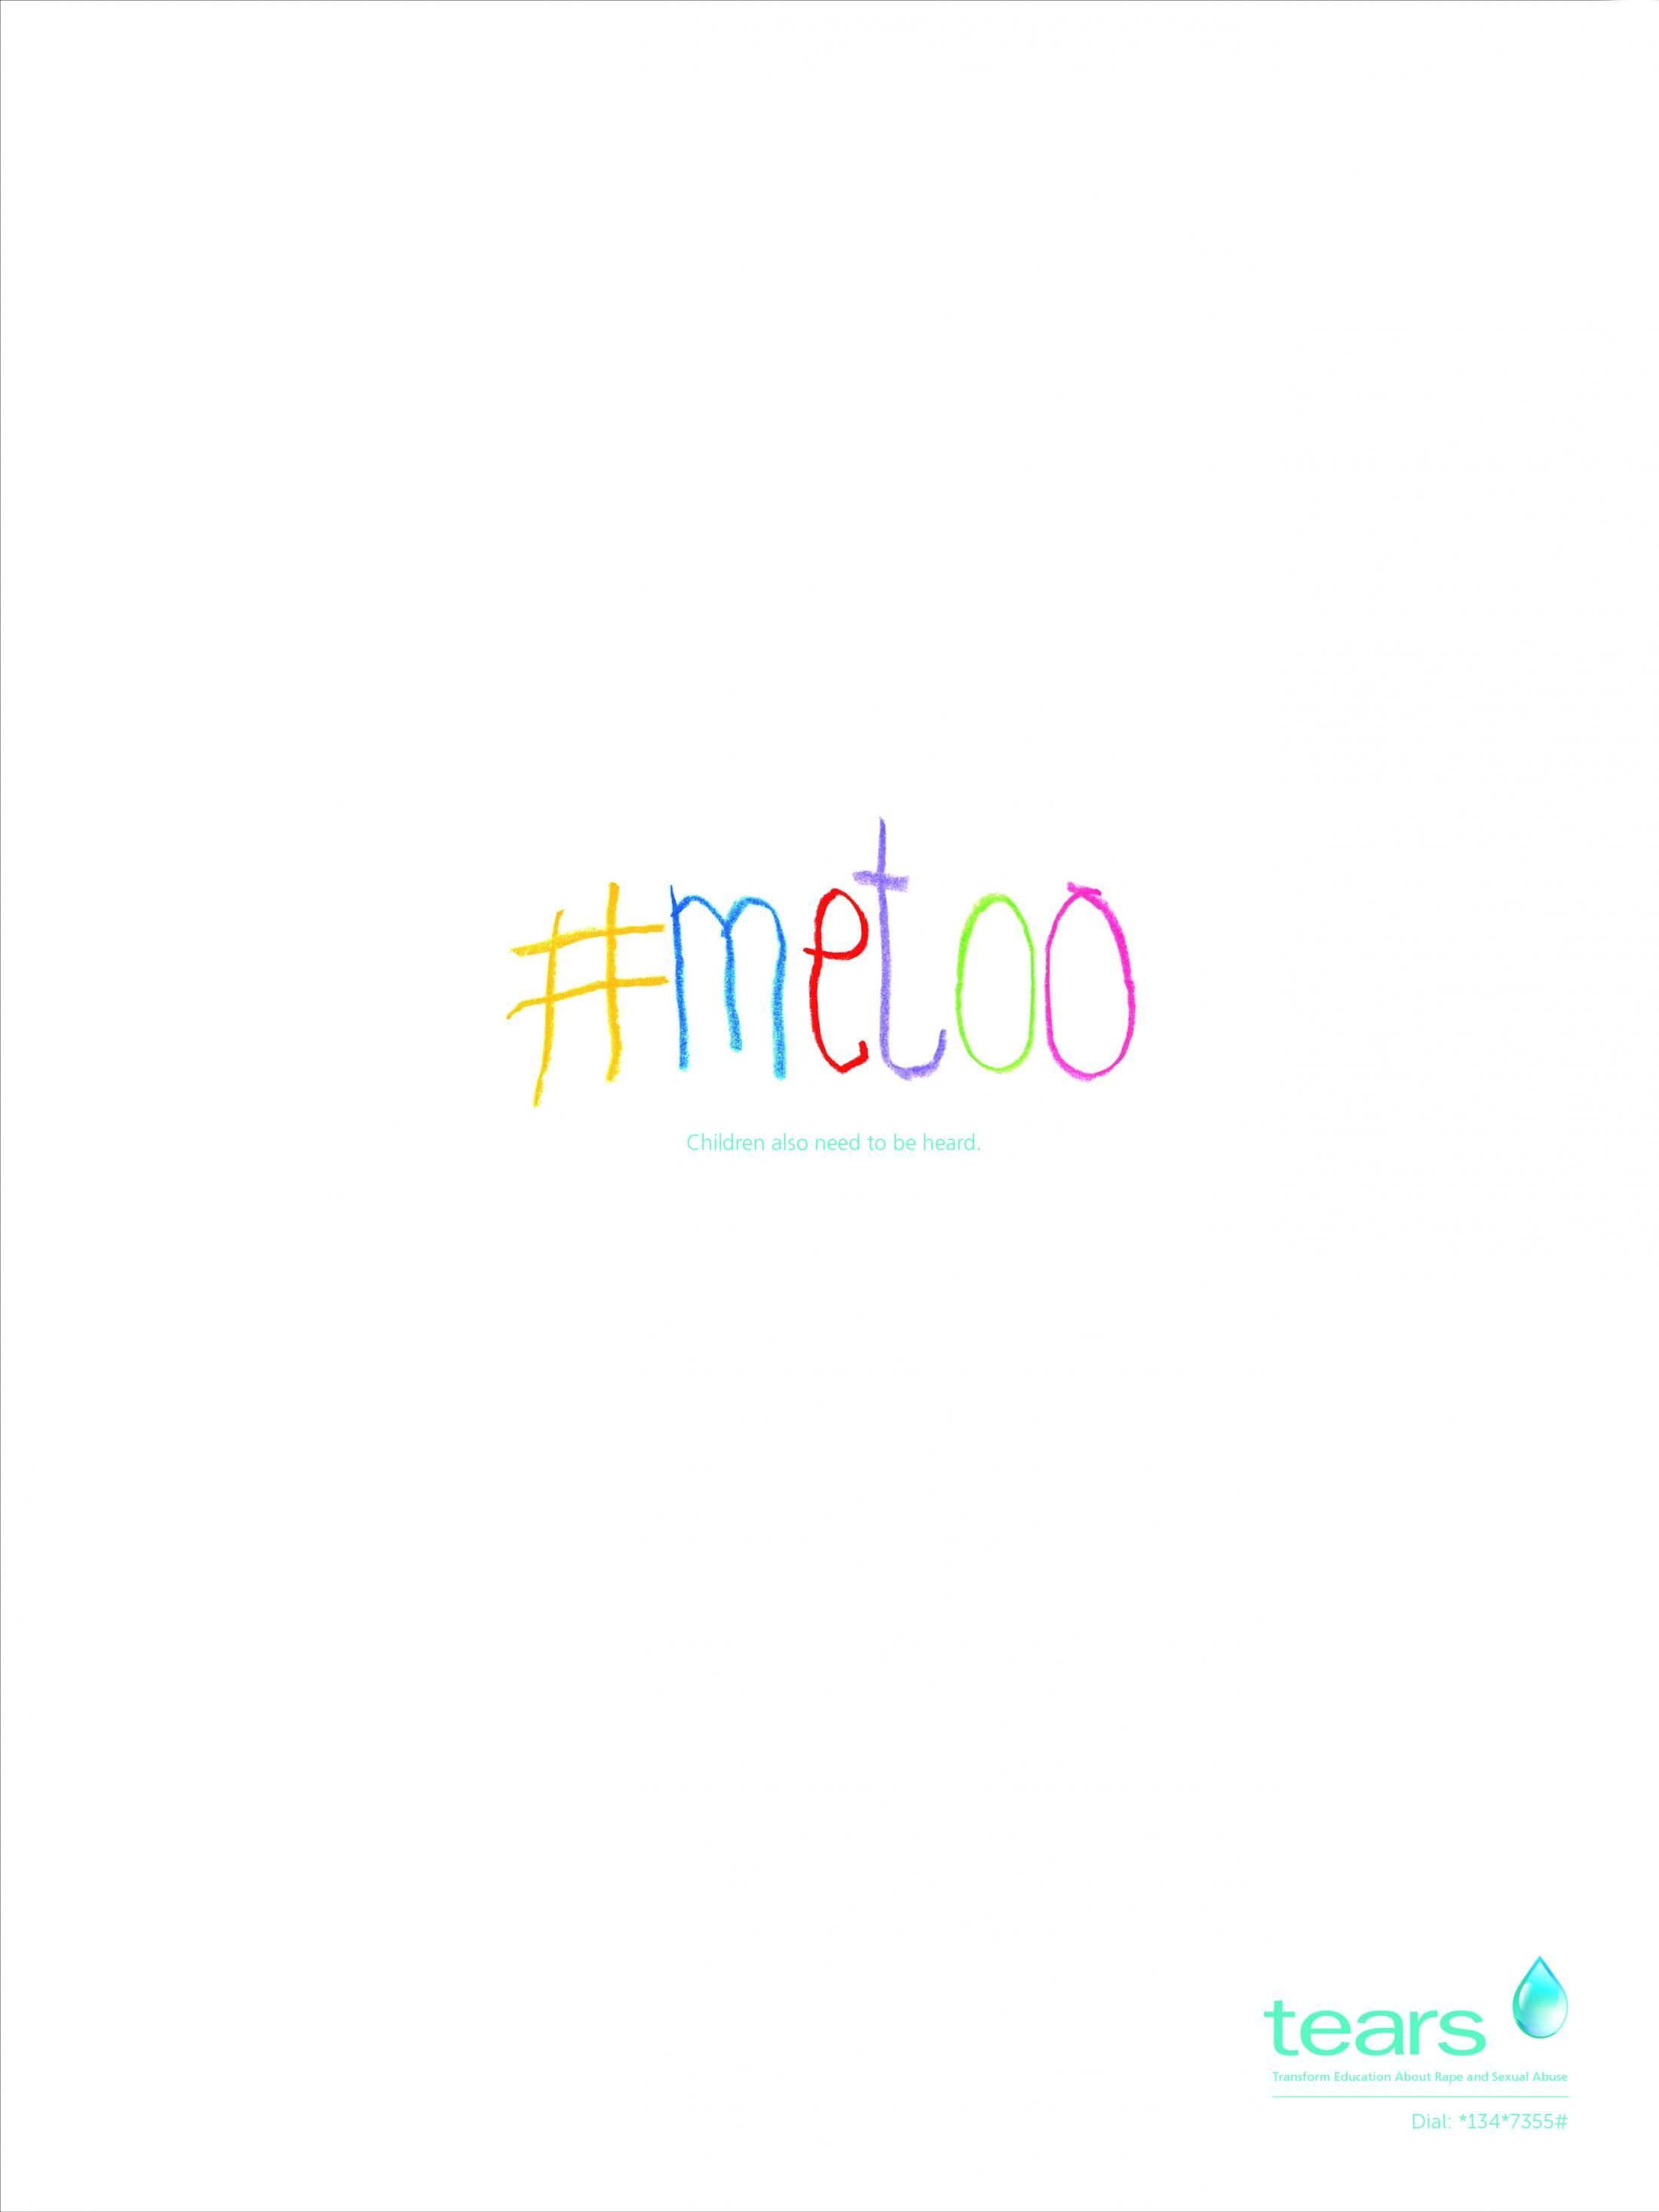 metoo_campaign_tears_300x225mm_sun_tms_digital_proof